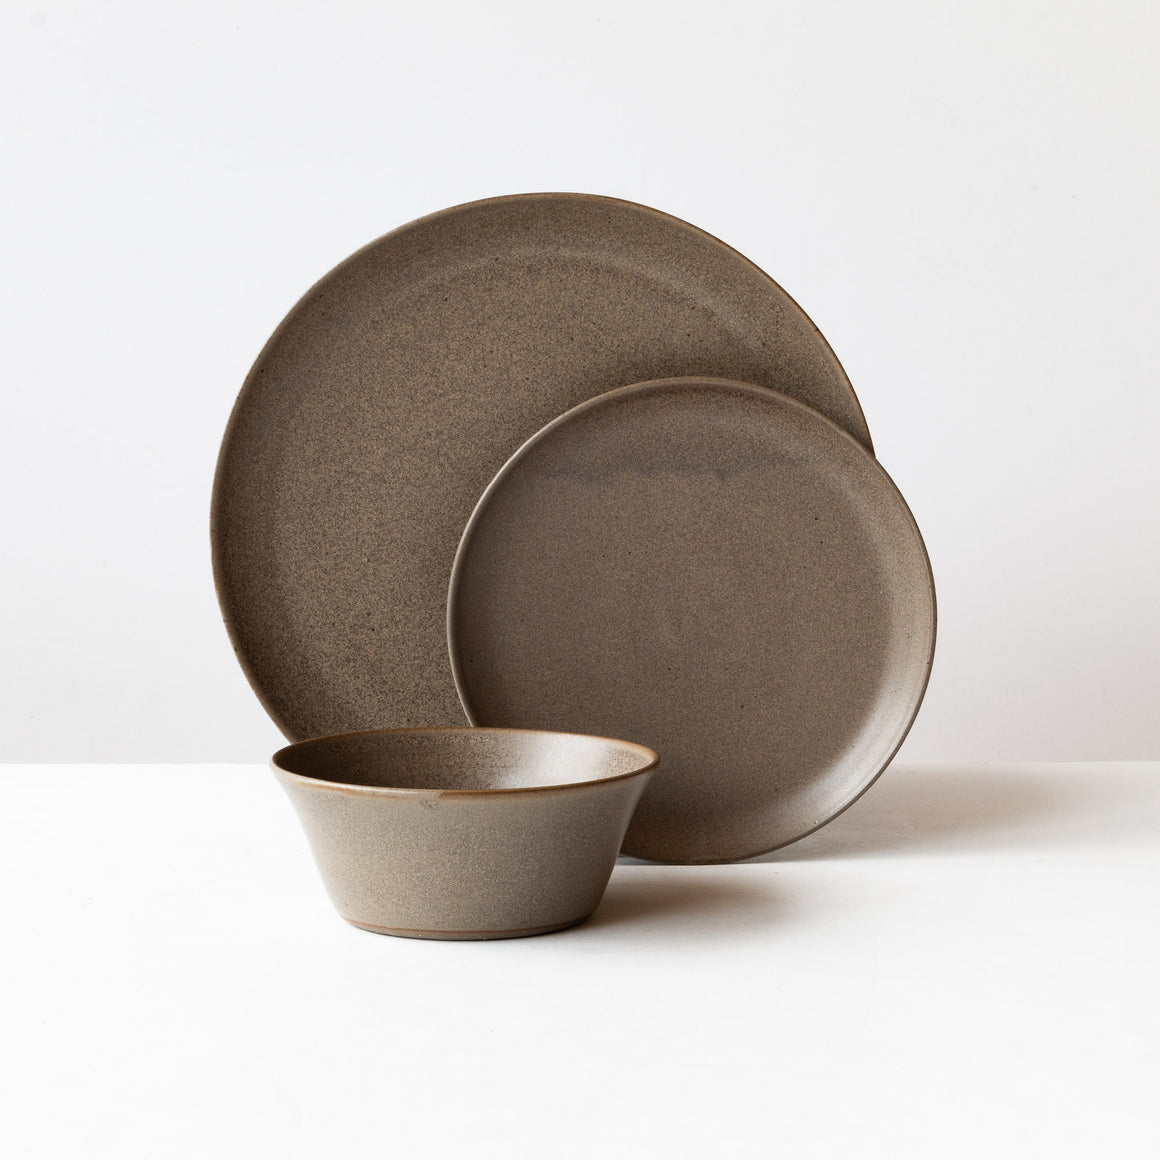 Matte Black - Handmade 3-Piece Grey Stoneware Dinnerware Set - Sold by Chic & Basta